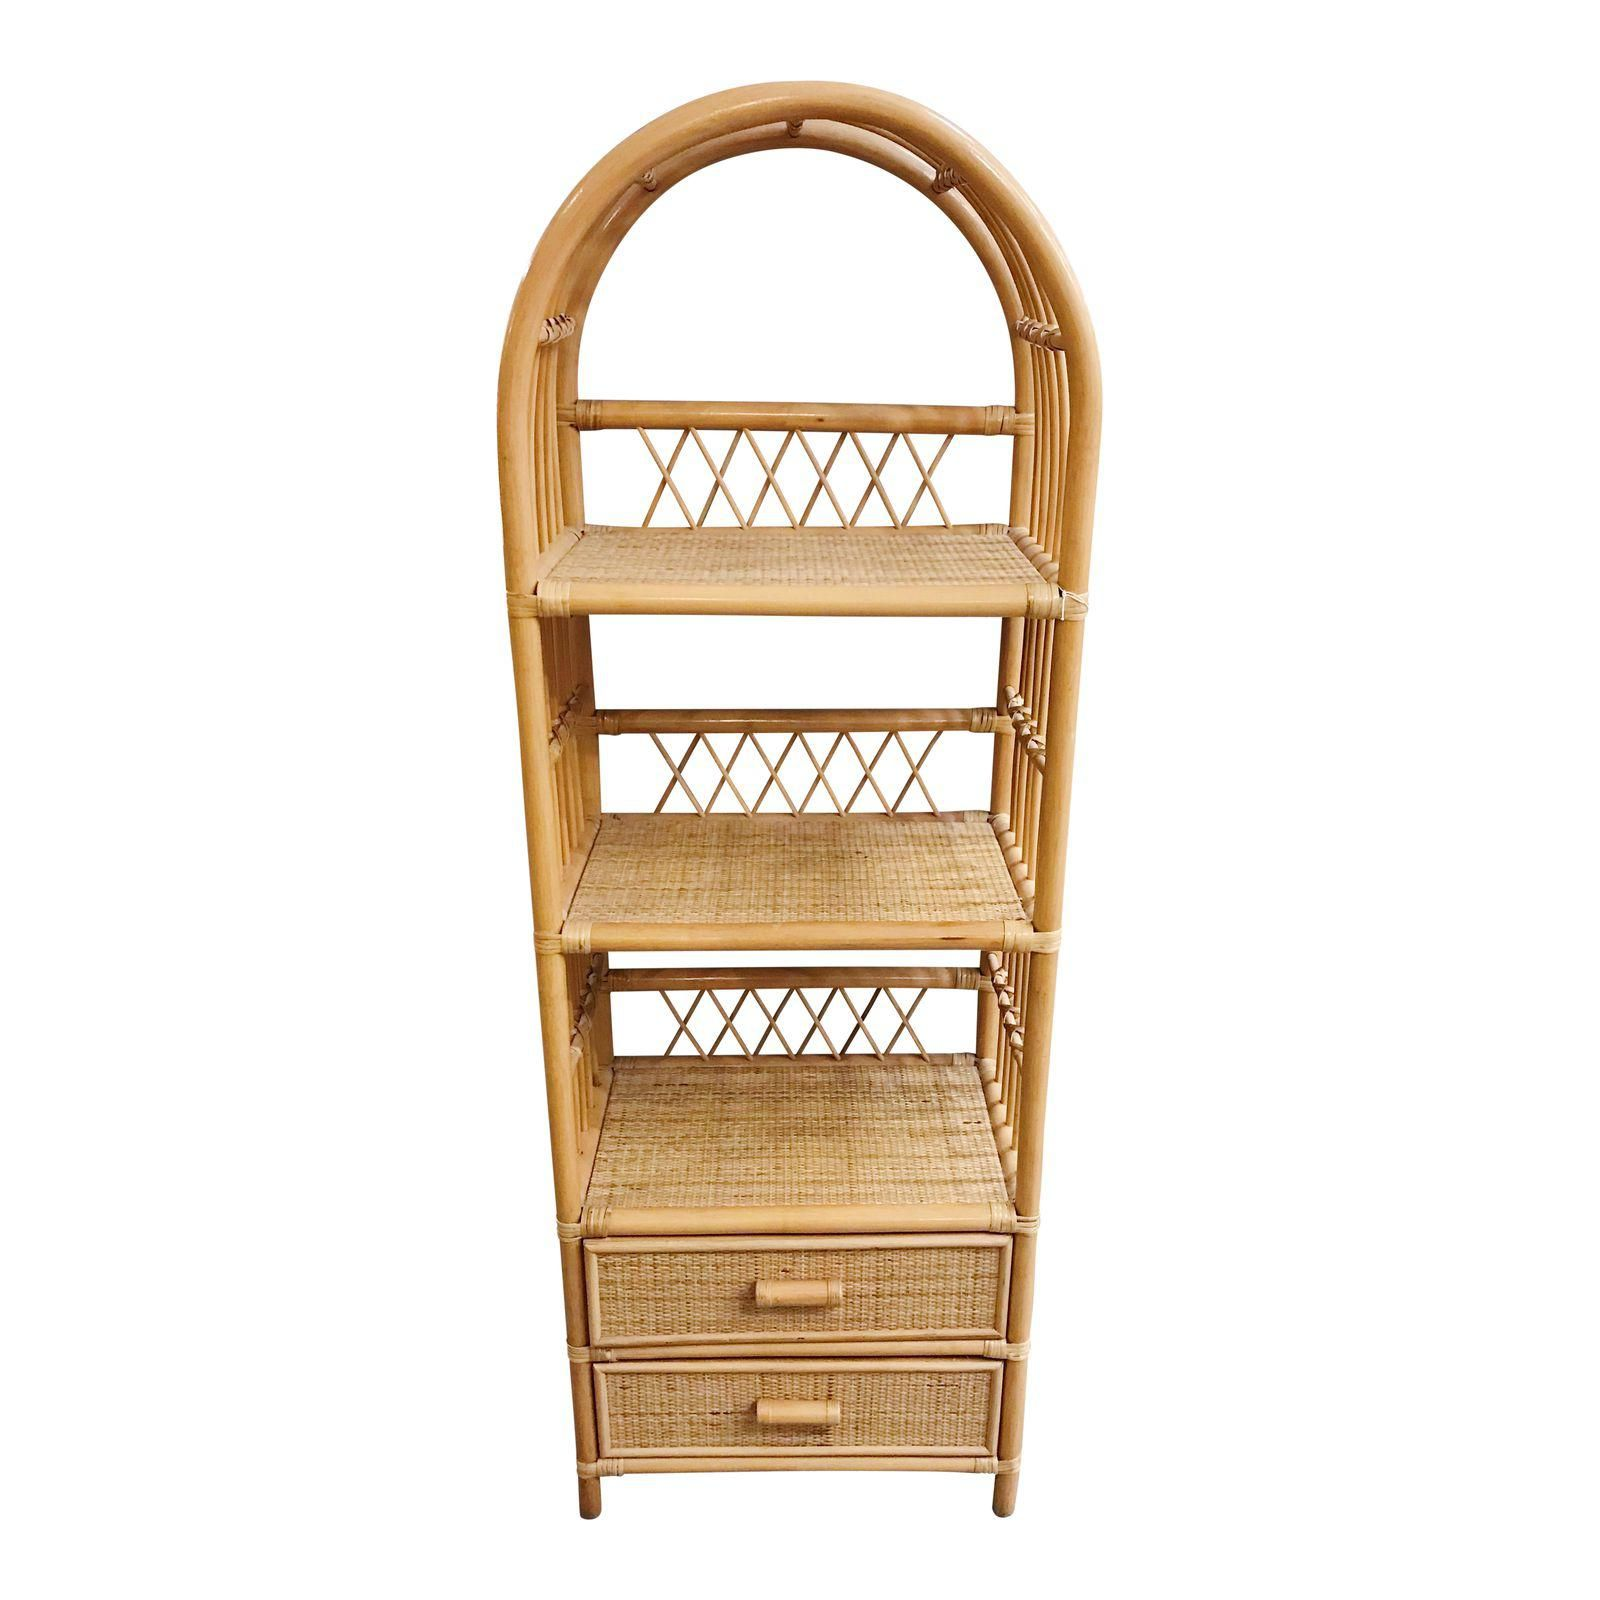 Vintage Rattan Etagere Shelf Unit With Drawers Image 1 Of 7 Home Design Decor Space Decor Rattan